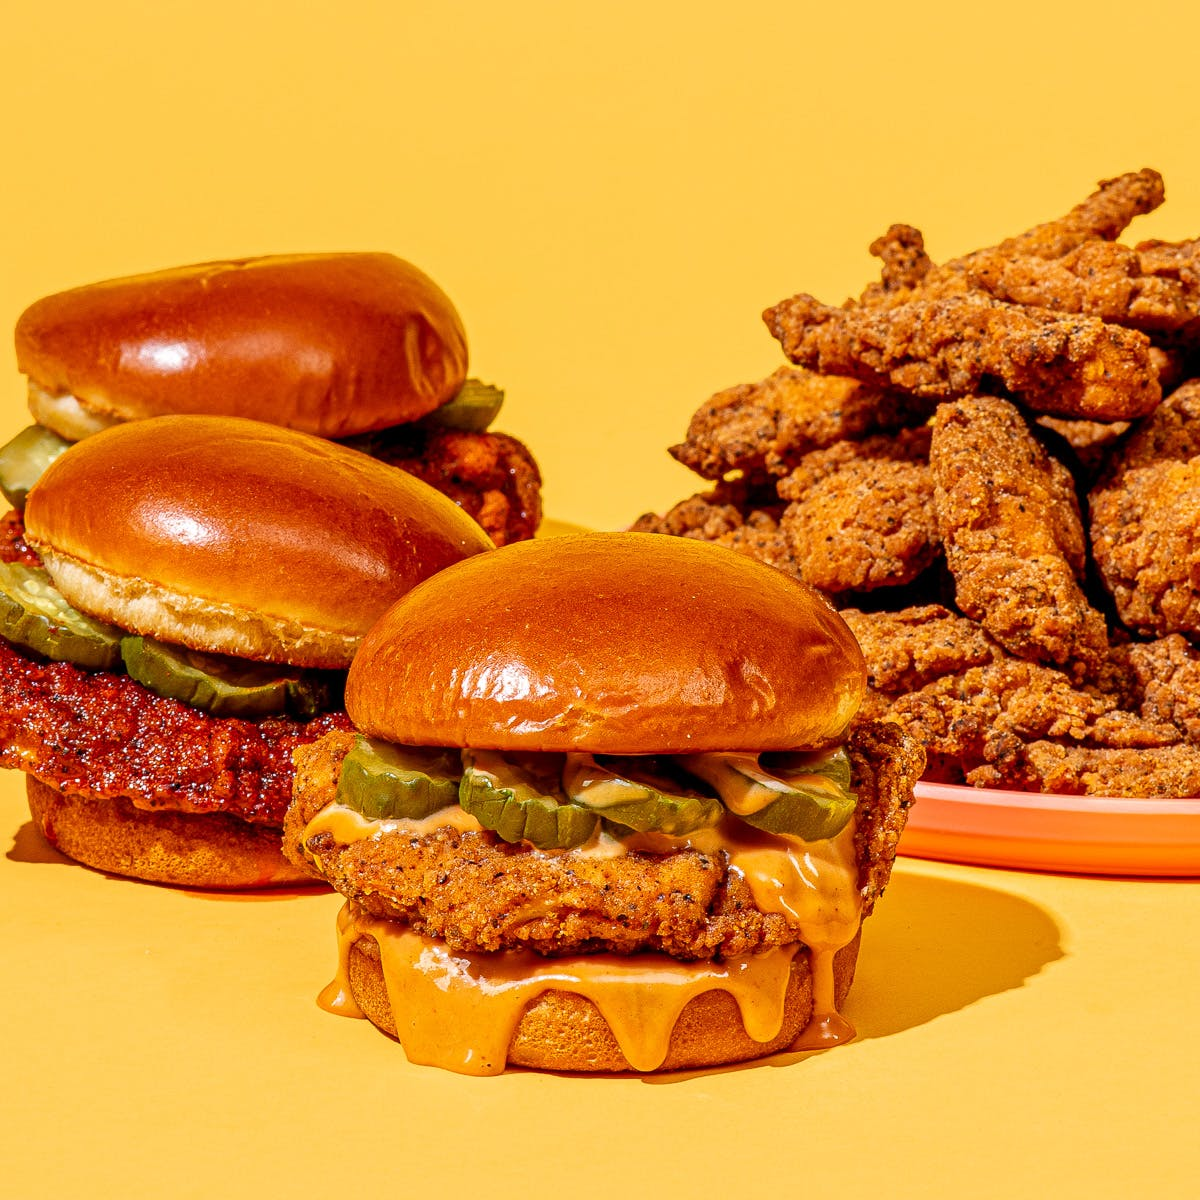 Craving @BigChickenShaq? My Crispy Chicken Sandwiches and Chicken Tenders are now shipping nationwide with Goldbelly! Use promo code GOLDBELLYIT to save $15 on your first purchase. Order Now: